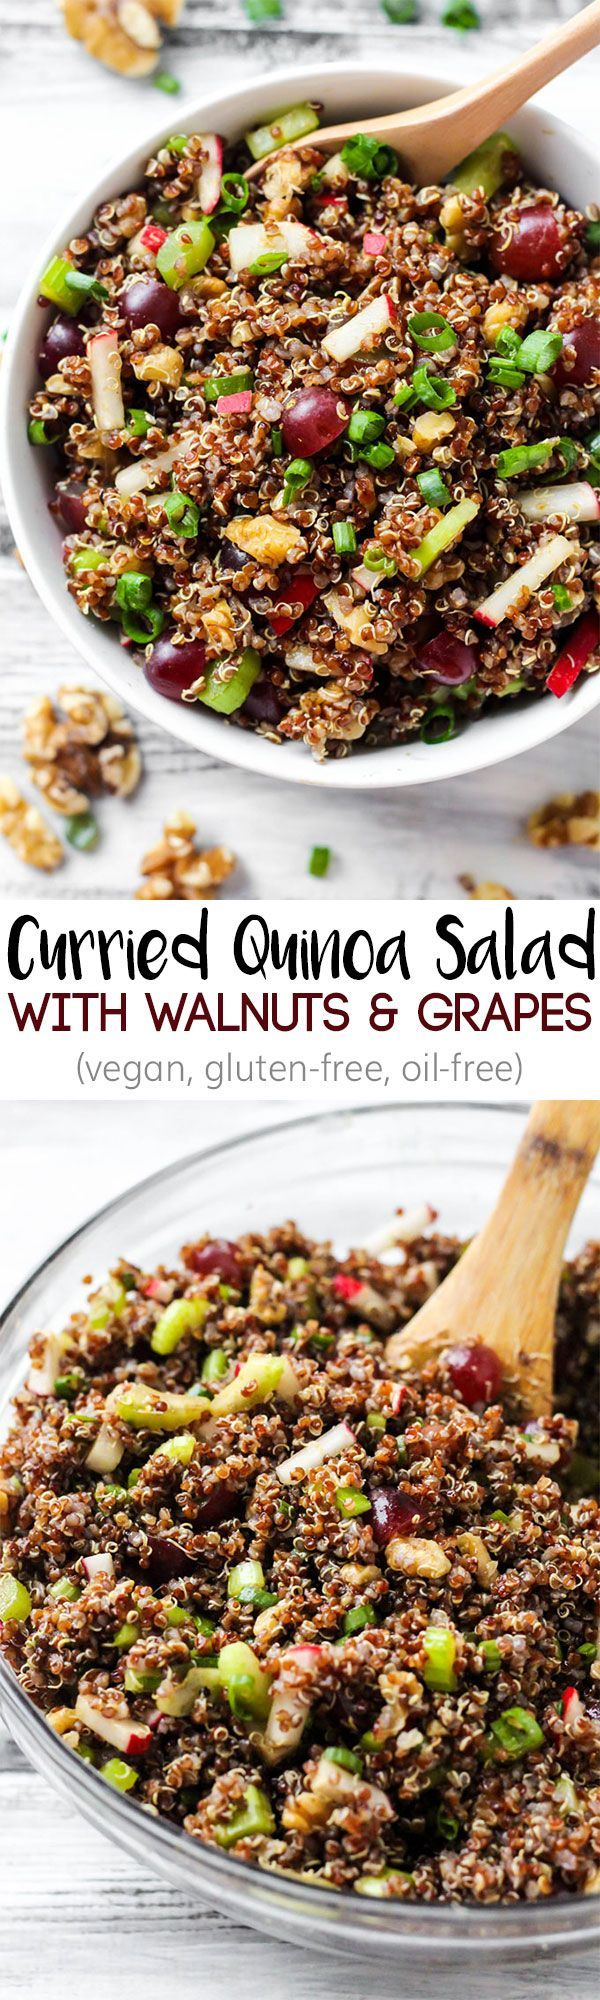 Serve this Curried Quinoa Salad as a flavorful side dish full of crunchy walnuts, juicy grapes and a curry dressing. Leftovers make a great light lunch! @cawalnuts #walnuts #CG #ad http://www.emilieeats.com/curried-quinoa-salad-grapes-walnuts/?utm_campaign=coschedule&utm_source=pinterest&utm_medium=Emilie%20Hebert%20%7C%20Emilie%20Eats%20&utm_content=Curried%20Quinoa%20Salad%20with%20Grapes%20and%20Walnuts